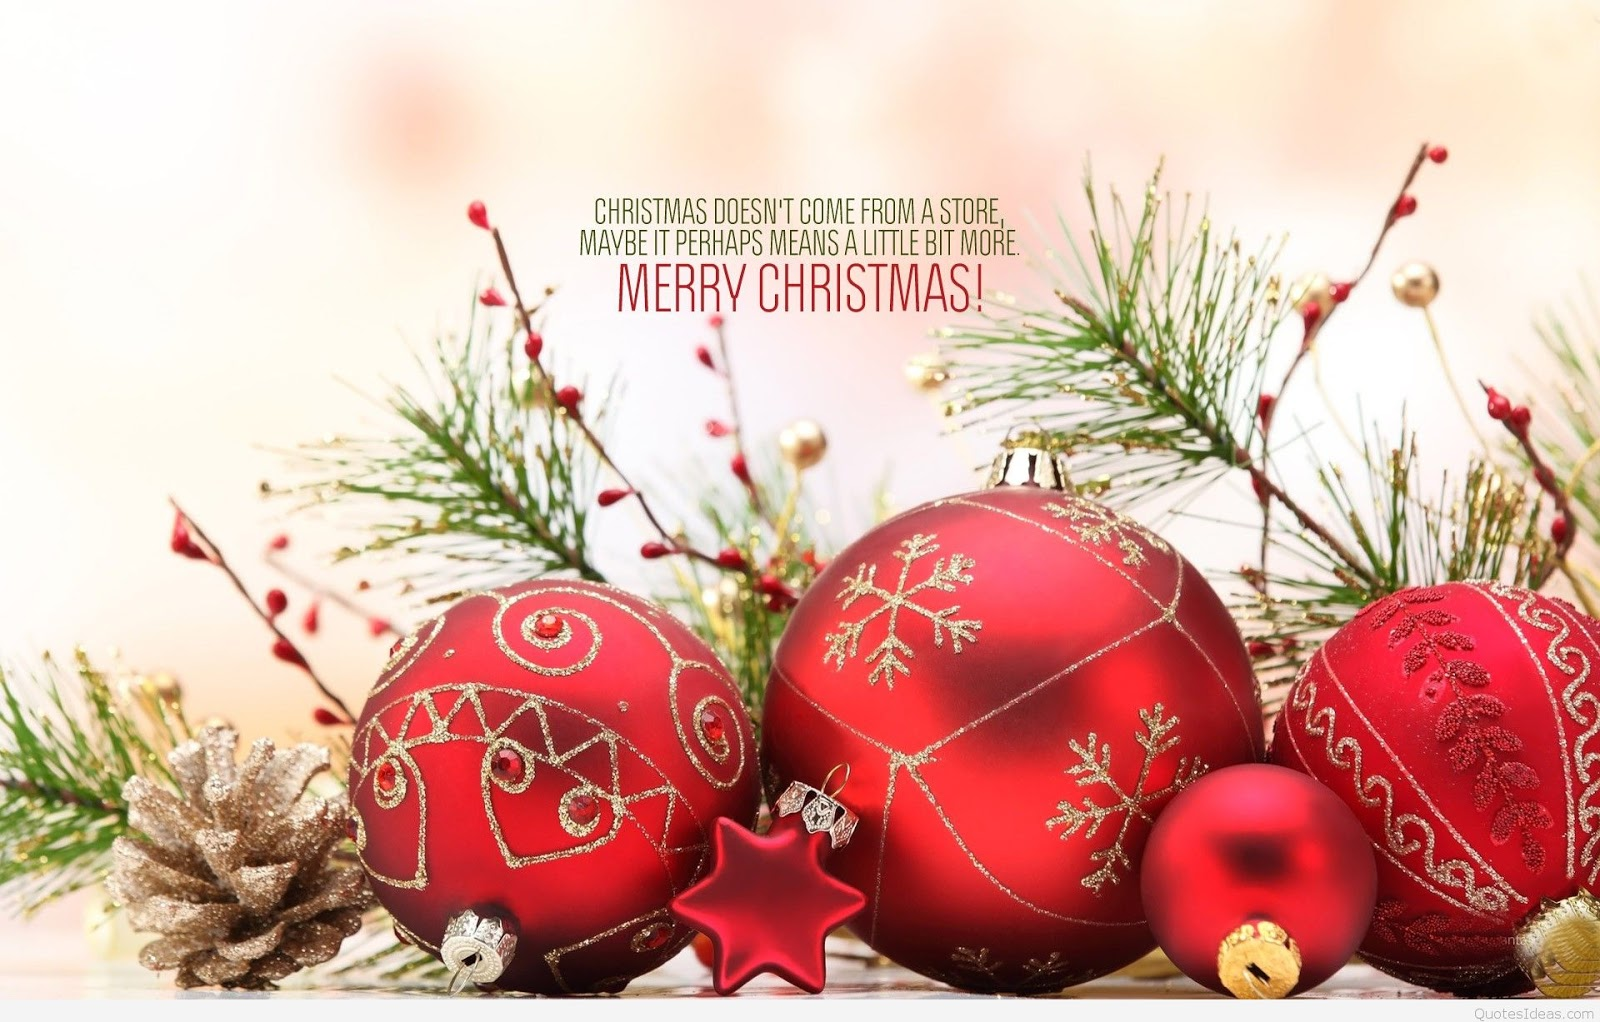 Top 100 Best Merry Christmas Wishes Images, Pics, Photos, Gifs ...